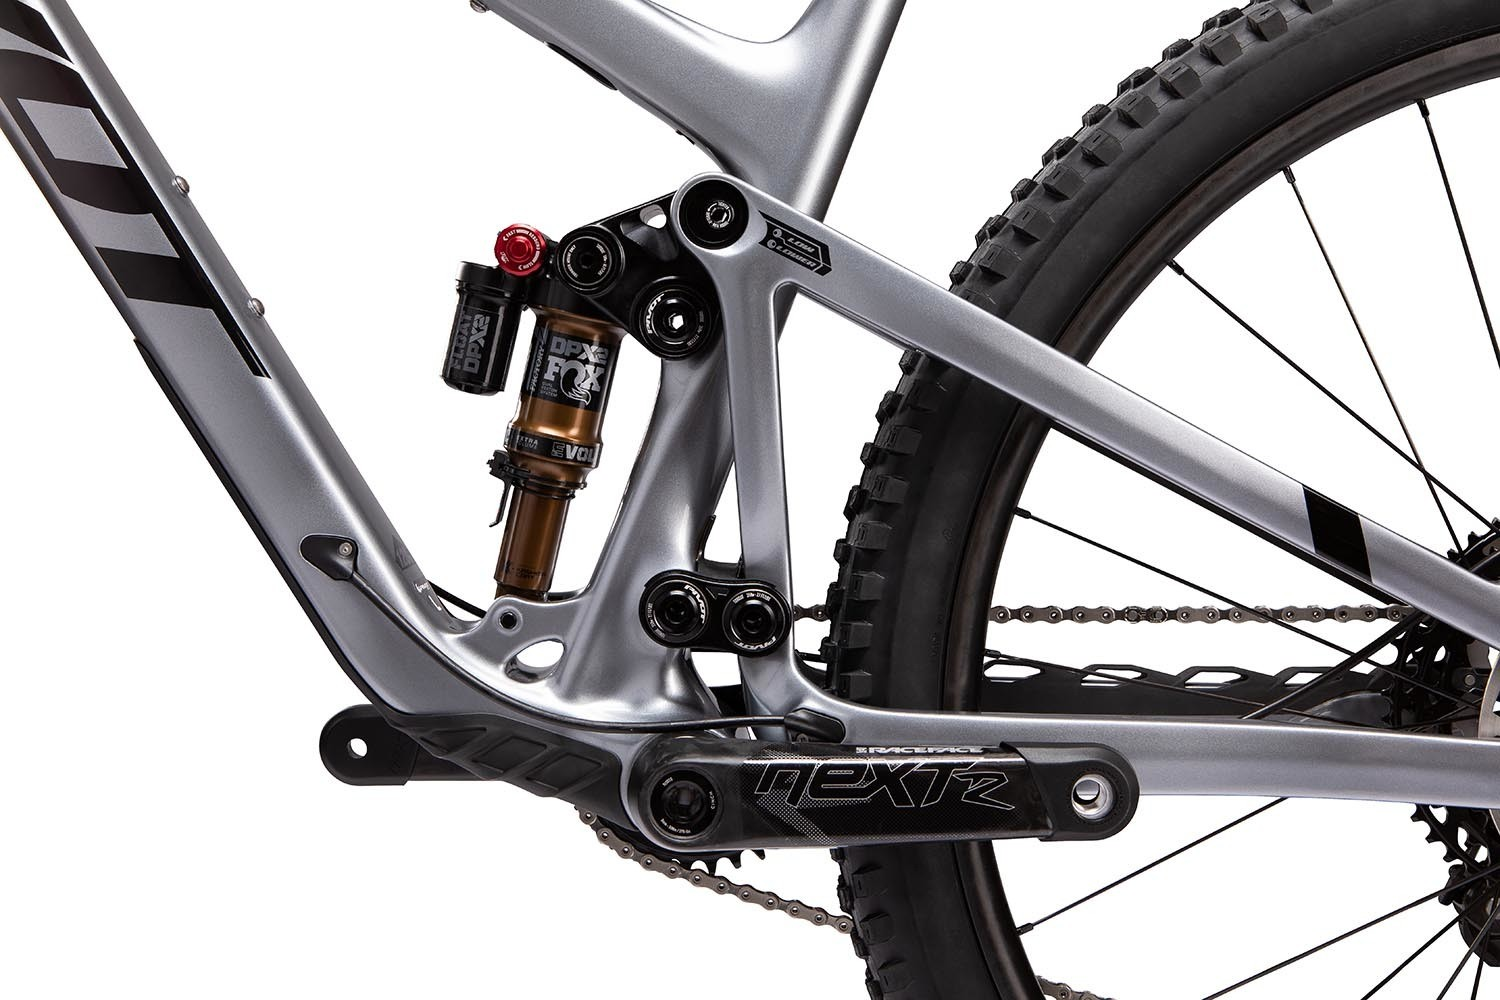 That flip-chip on the upper linkage? Yes, it can be used to set up the Pivot Trail 429 with a 27.5-inch rear wheel. Throw in a headset spacer from Pivot and the Trail 429 can run 27.5+ tires.